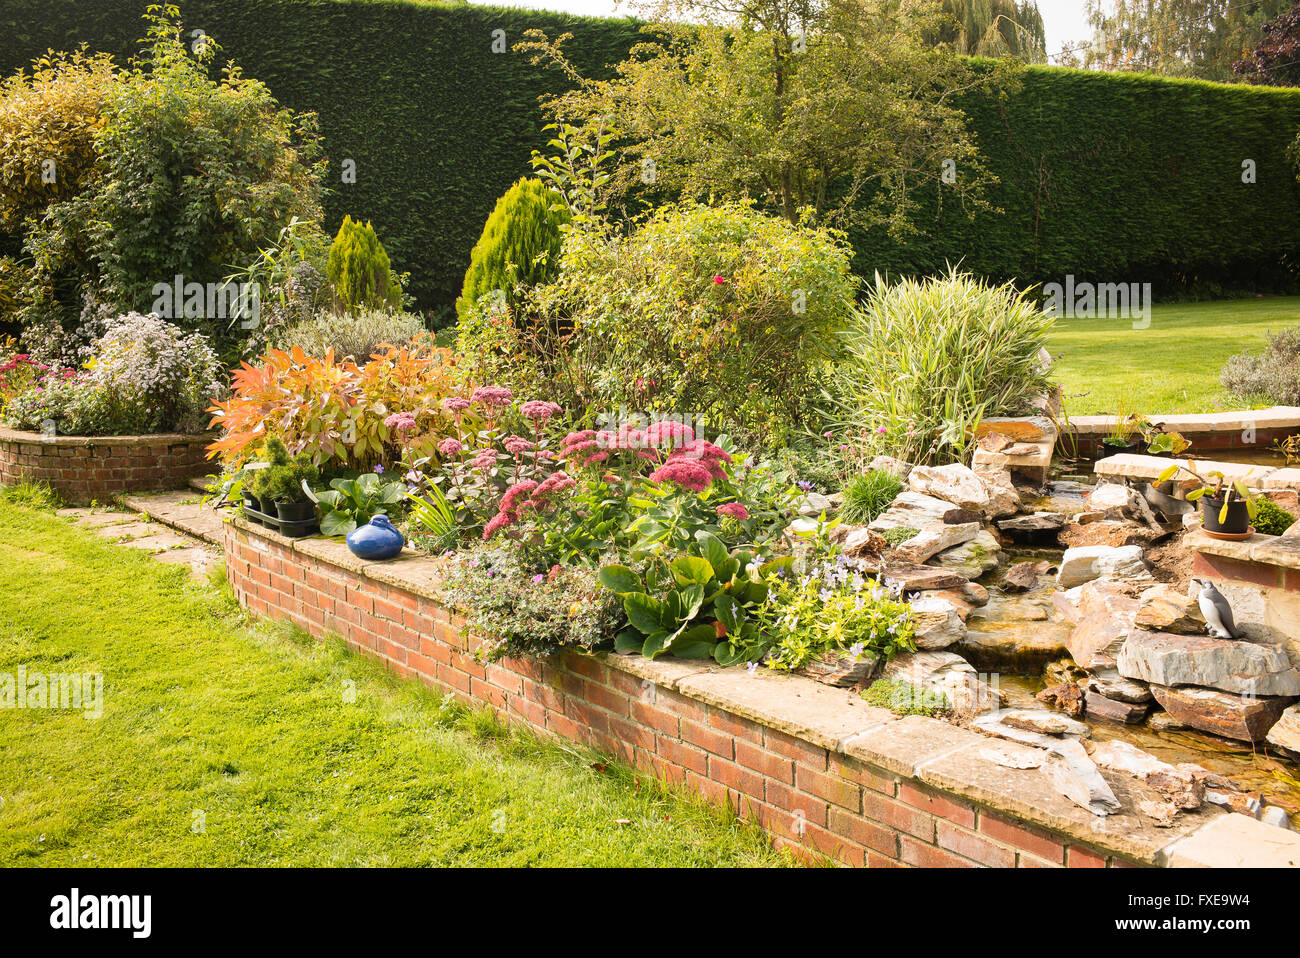 Brick Retaining Wall Stock Photos & Brick Retaining Wall Stock ...